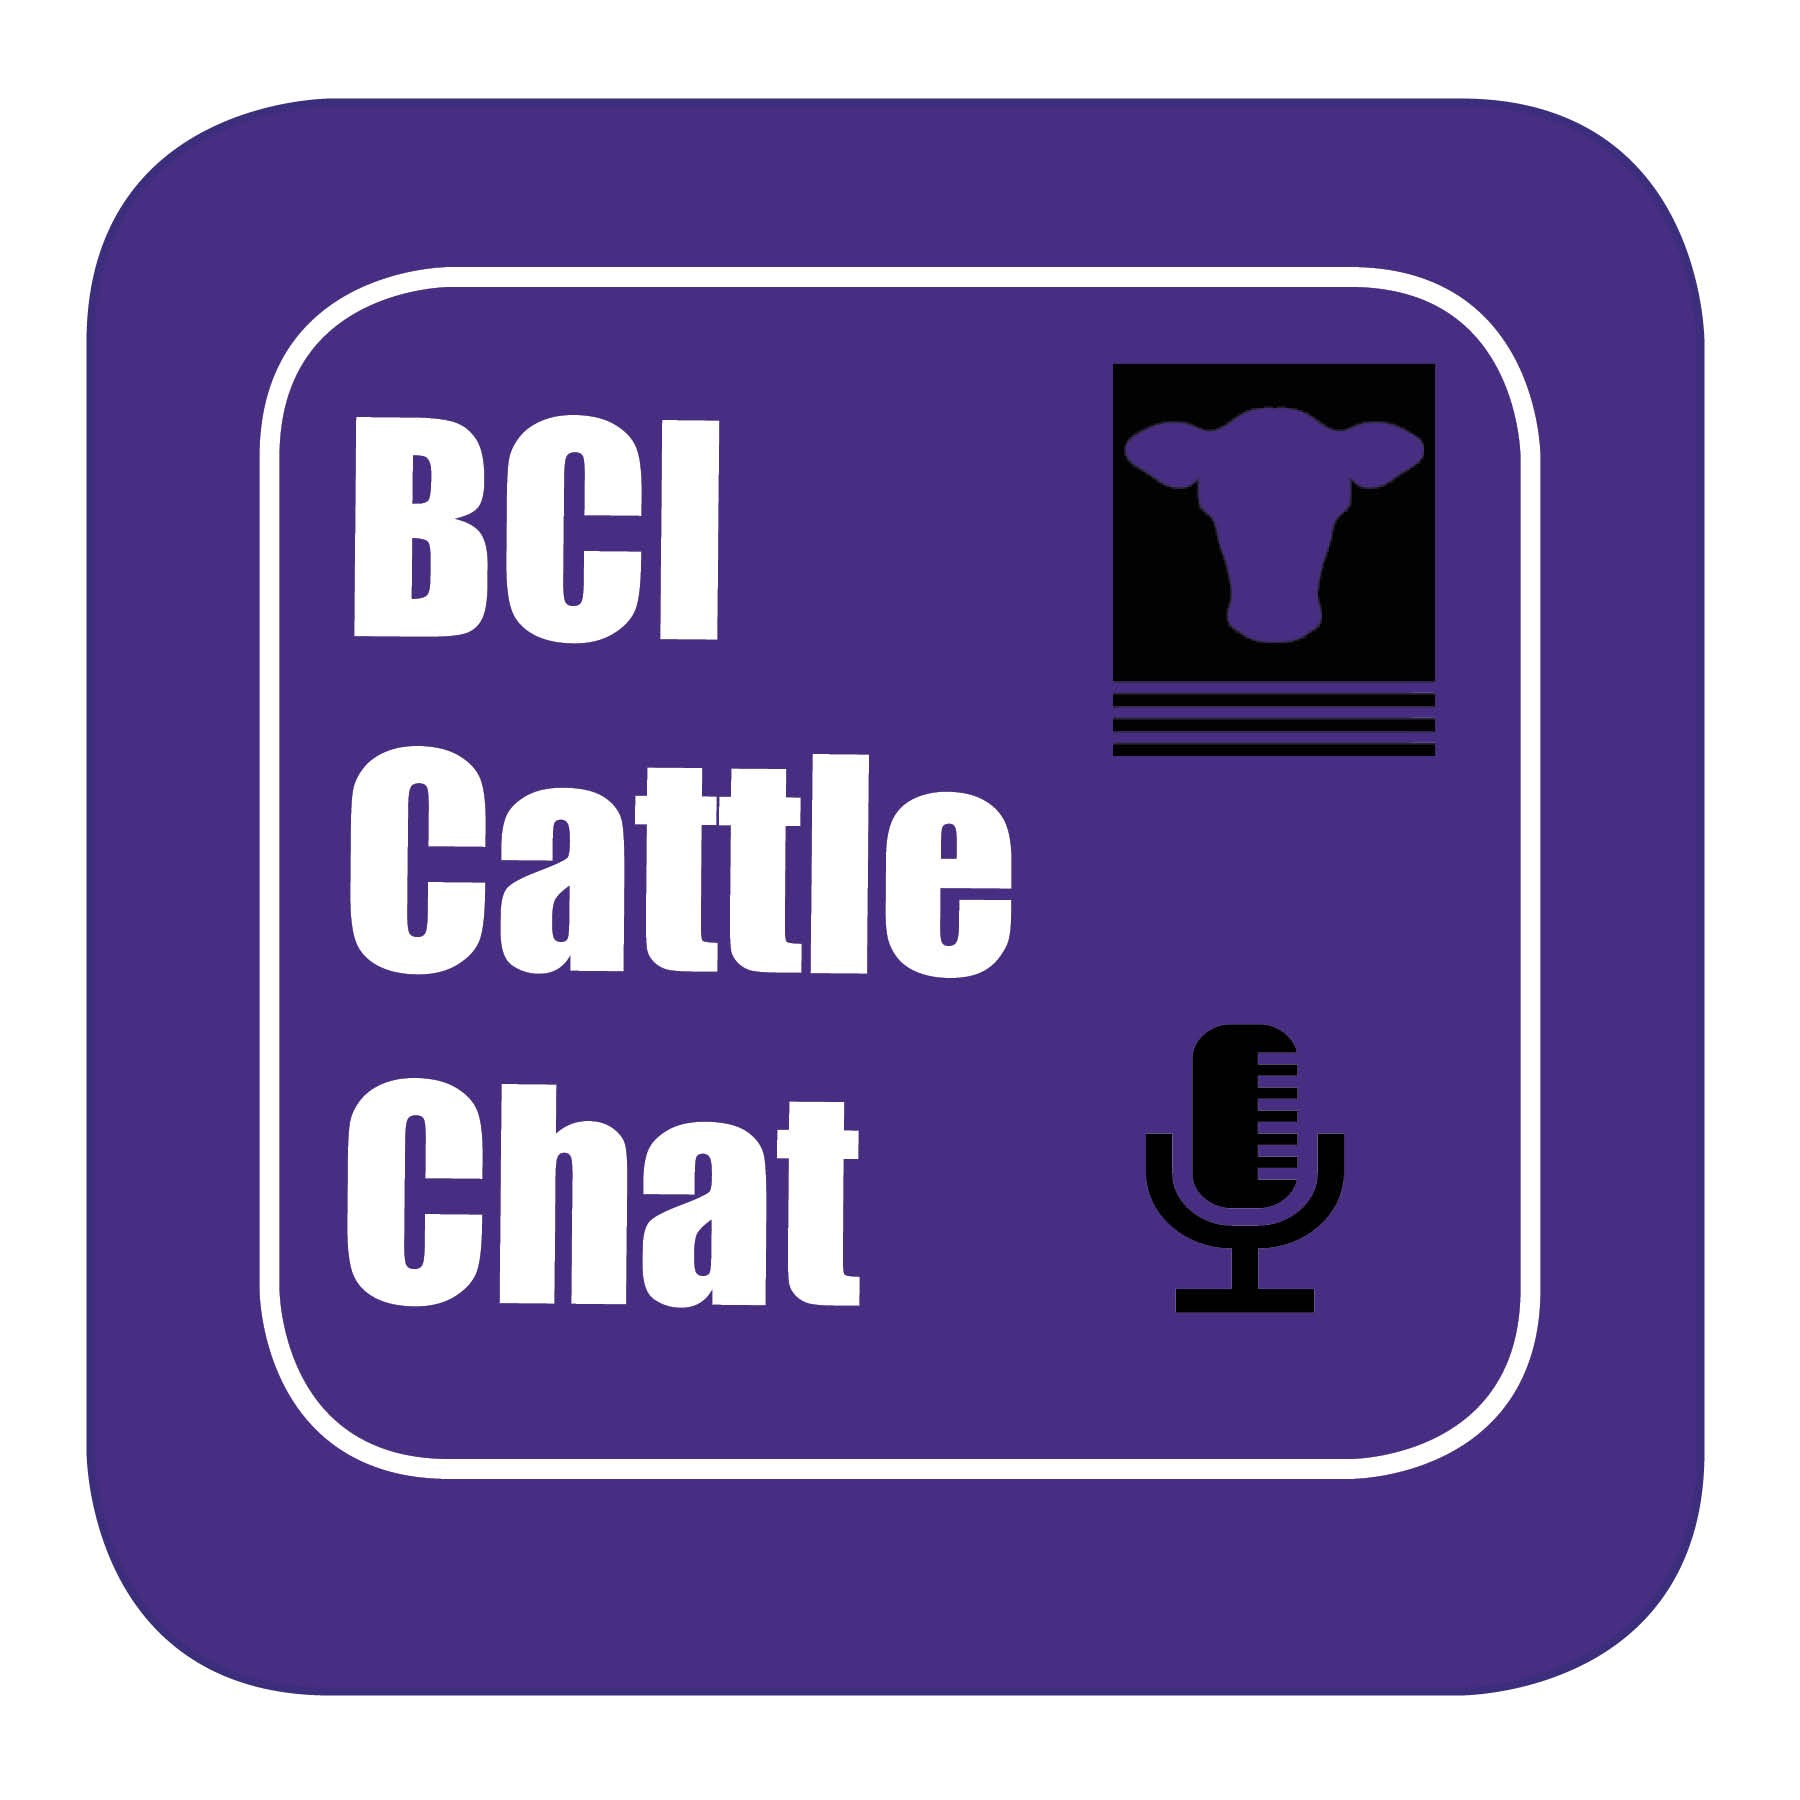 BCI Cattle Chat - Episode 39